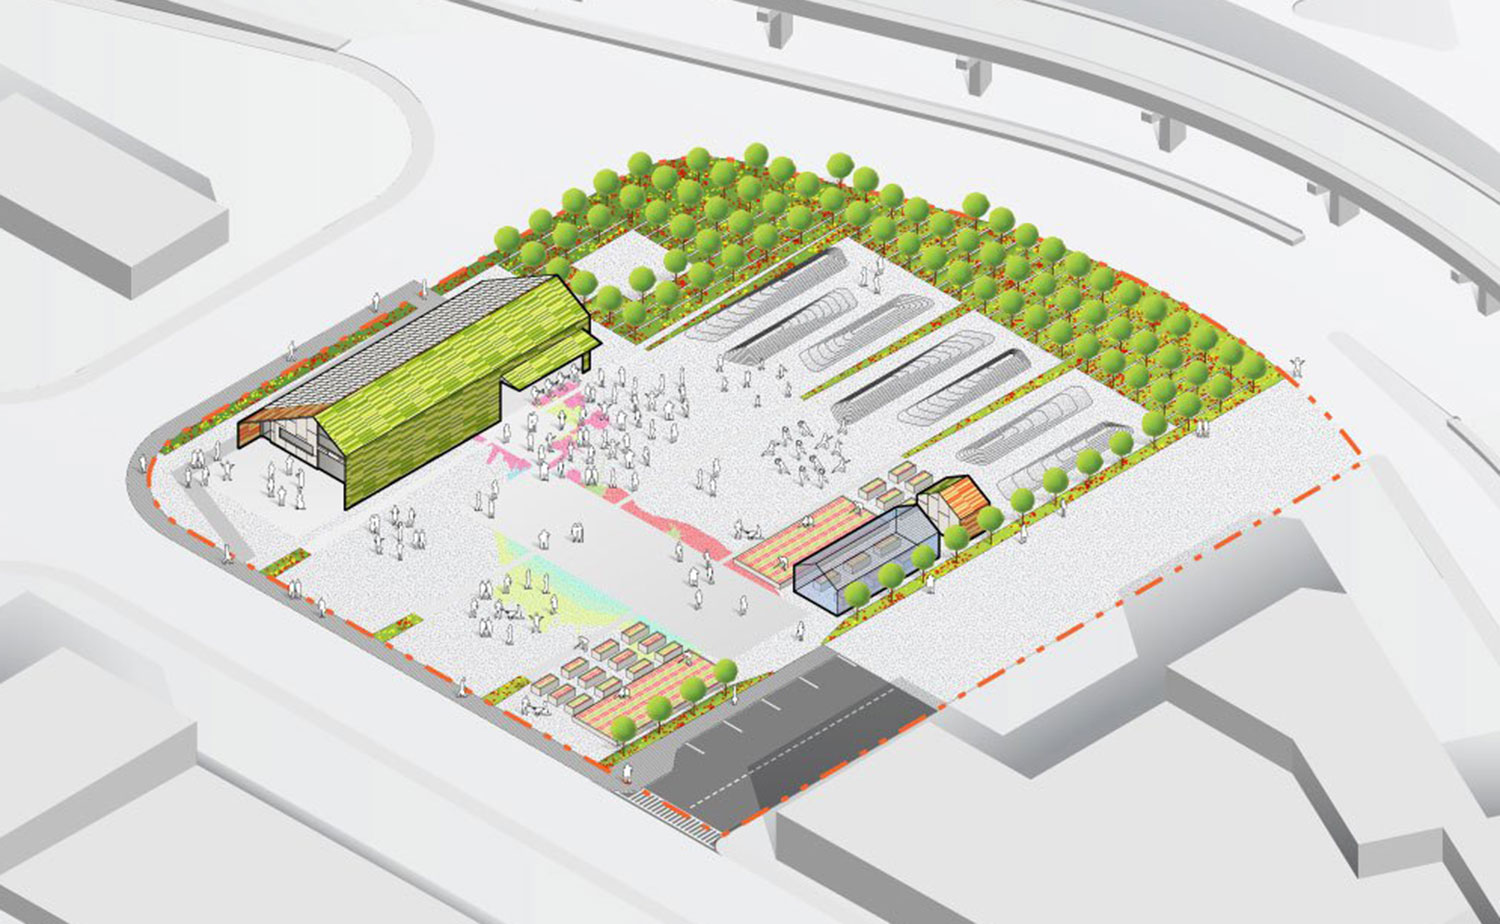 Proposed ArtFarm design. (Courtesy Somerville Arts Council)